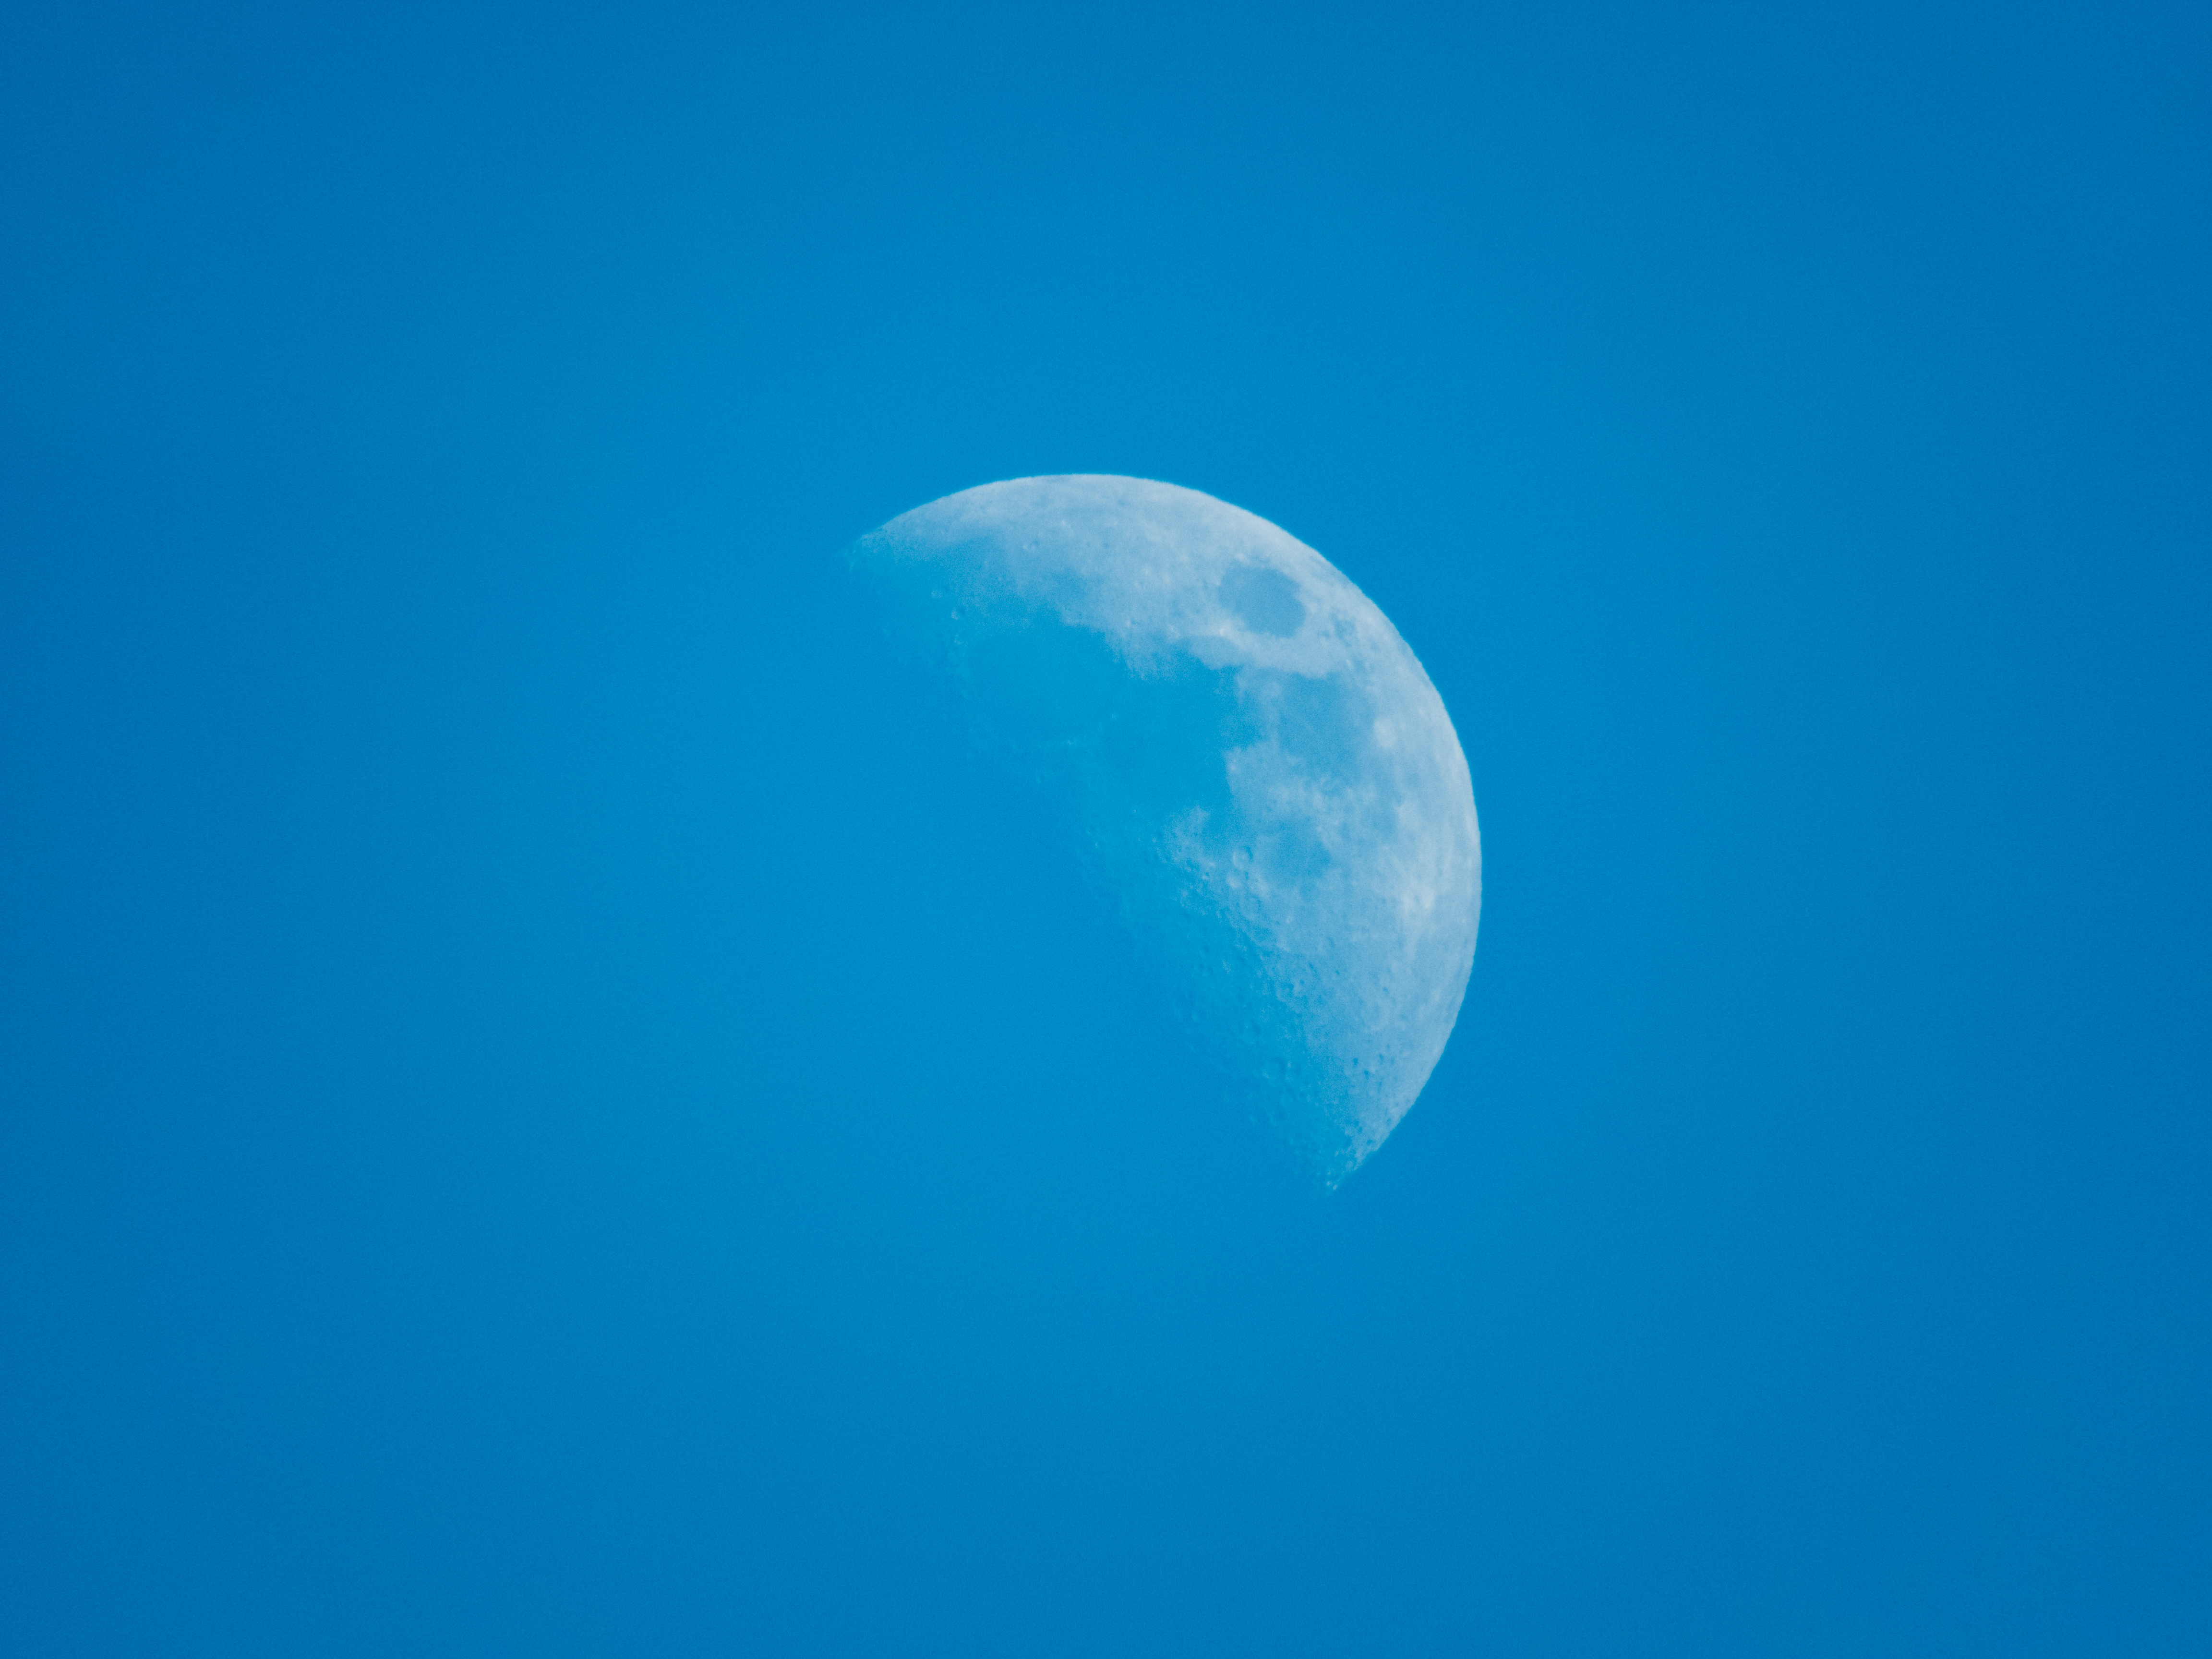 Picalls Com Moon In The Blue Sky By Jeffrey Betts